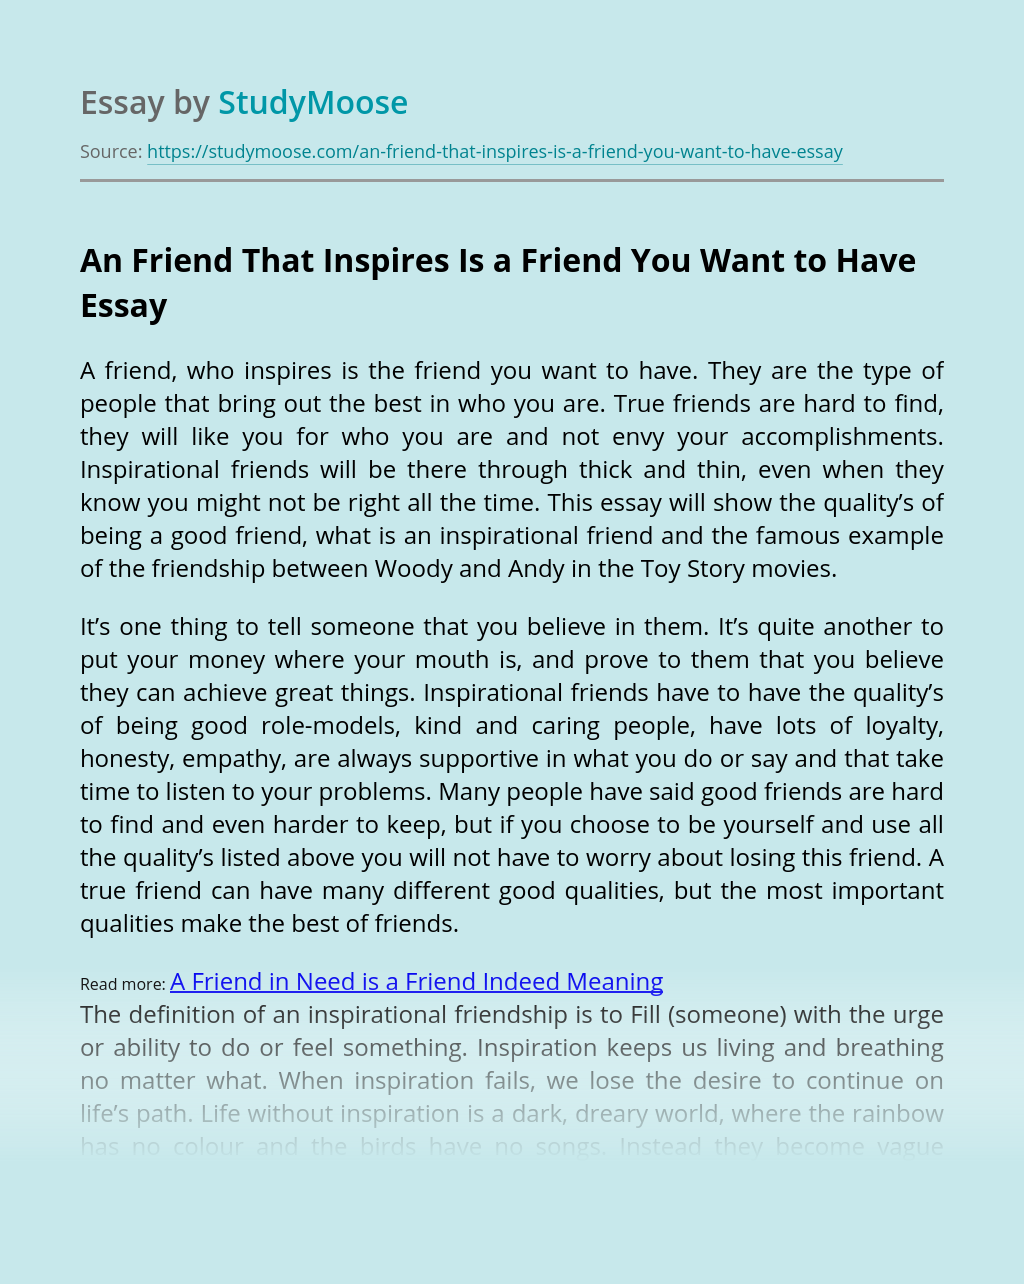 An Friend That Inspires Is a Friend You Want to Have